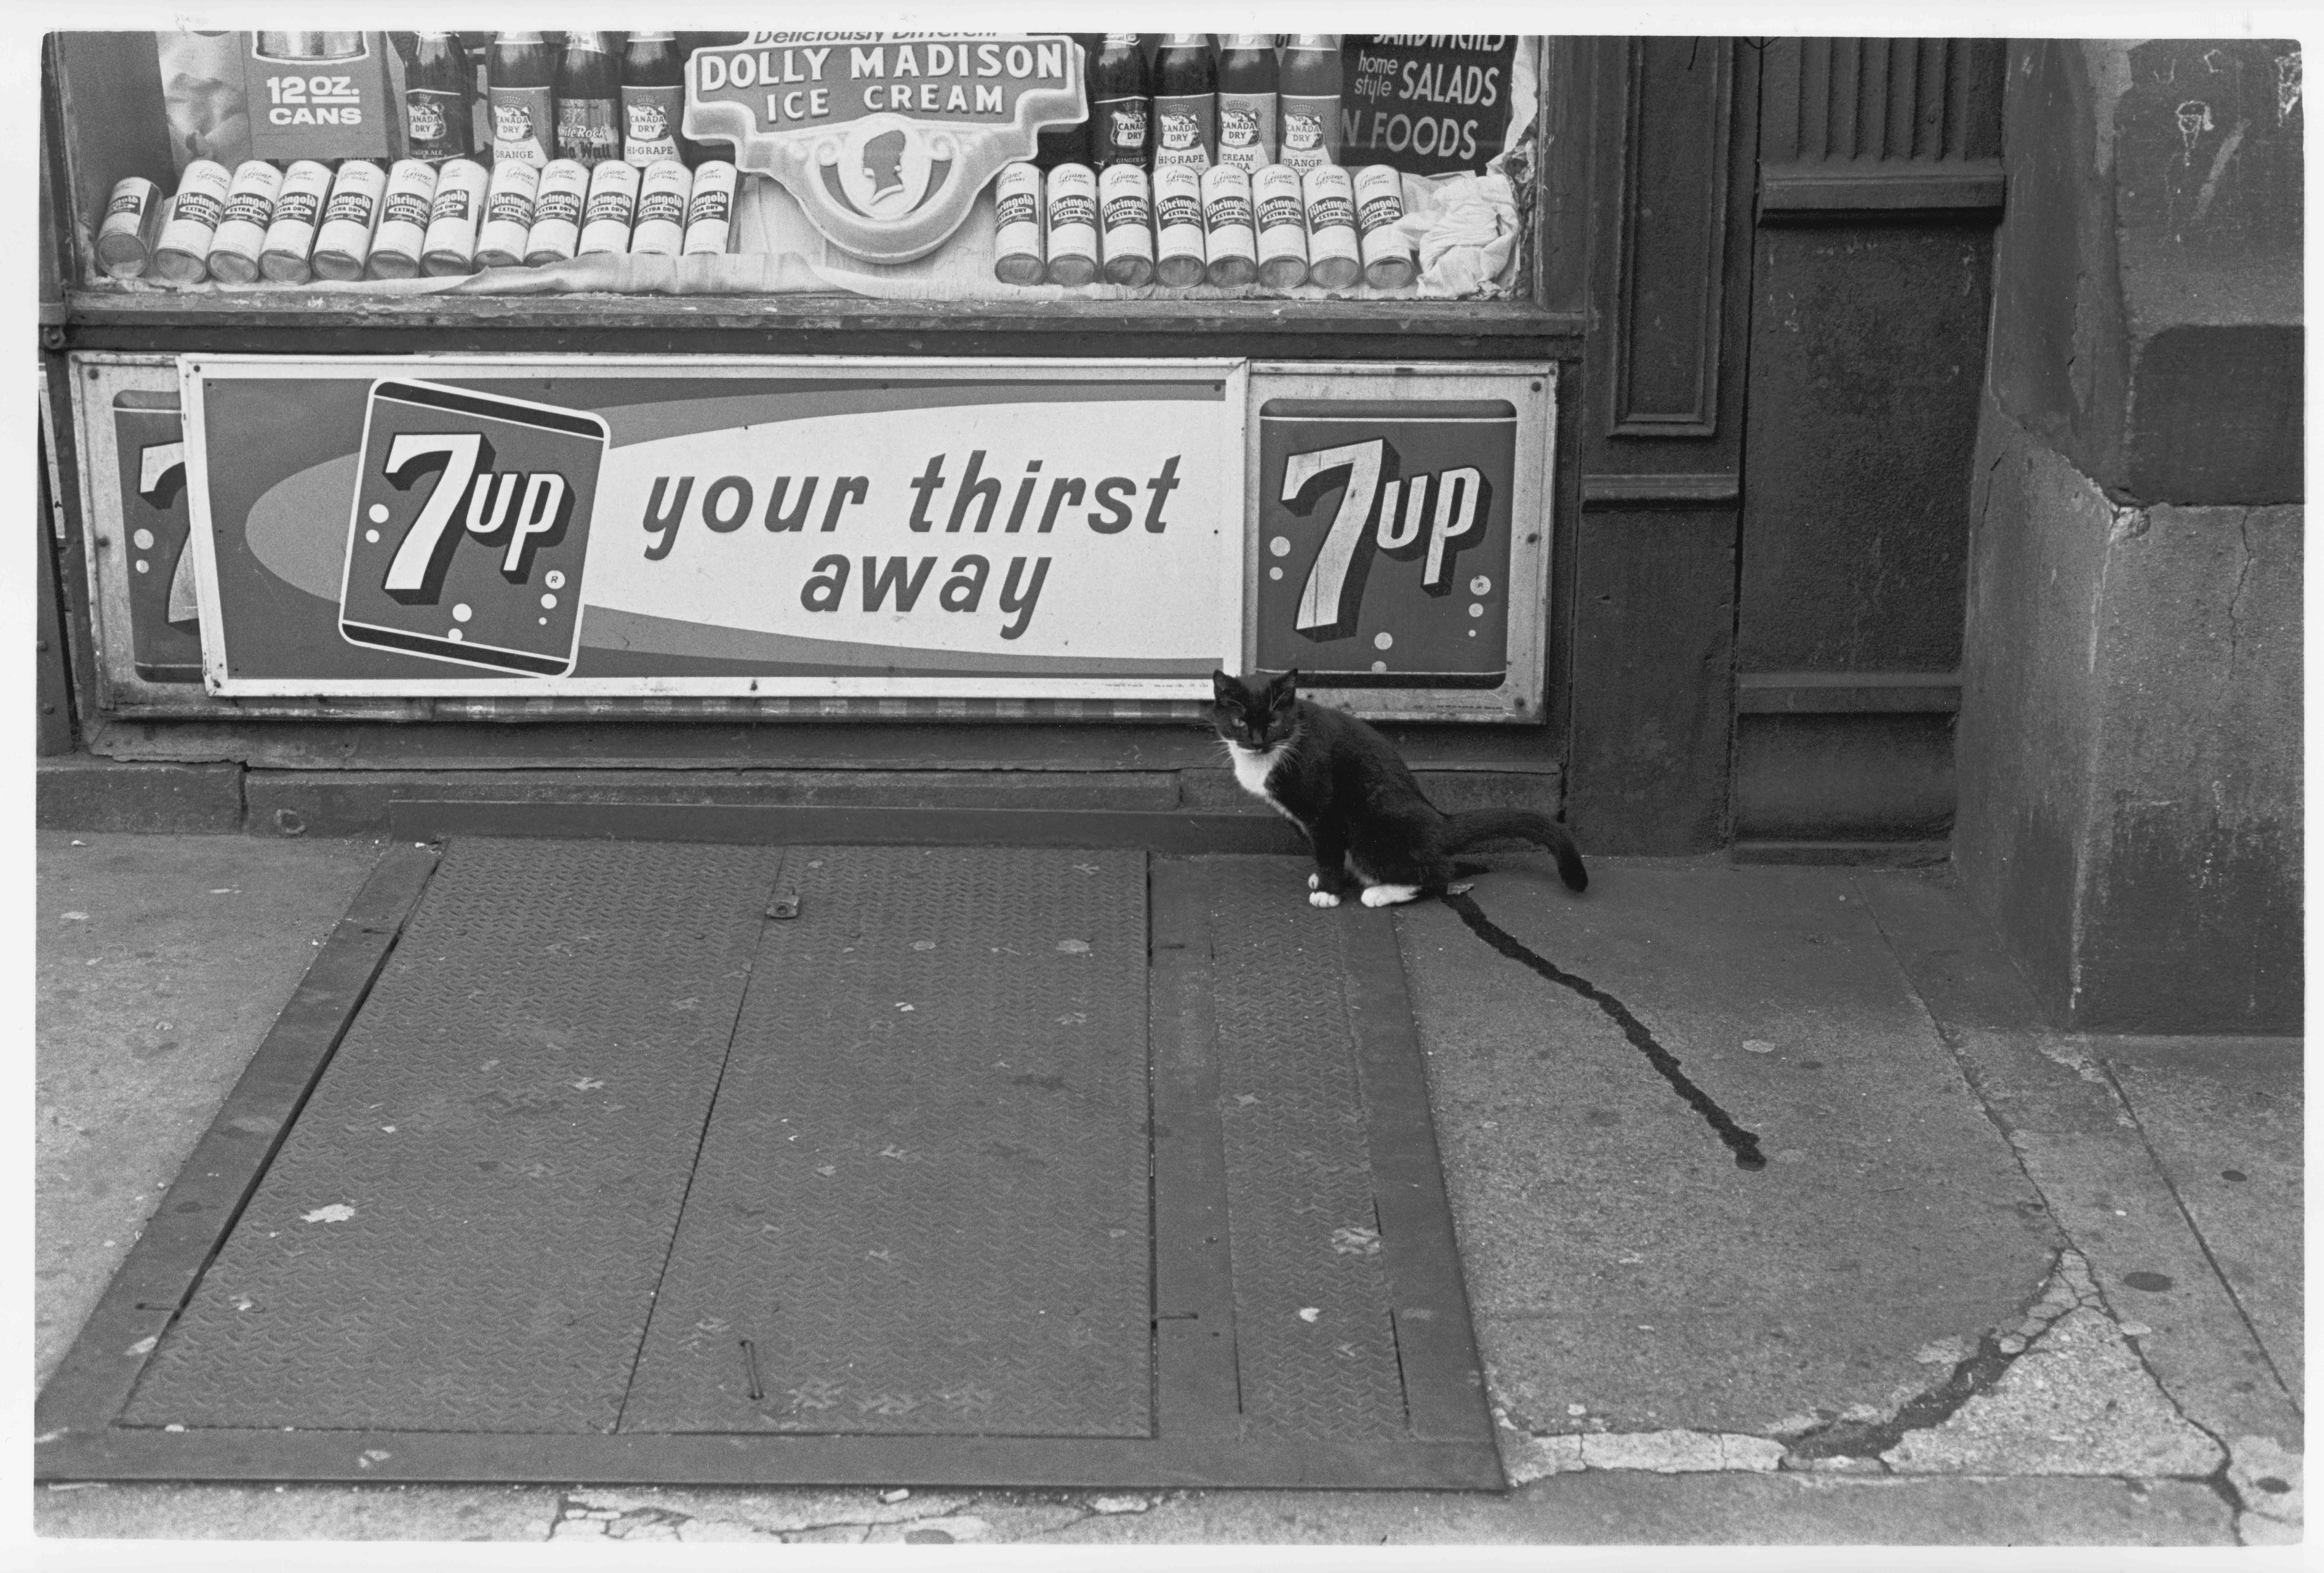 """7up your thirst away,"" 1965"